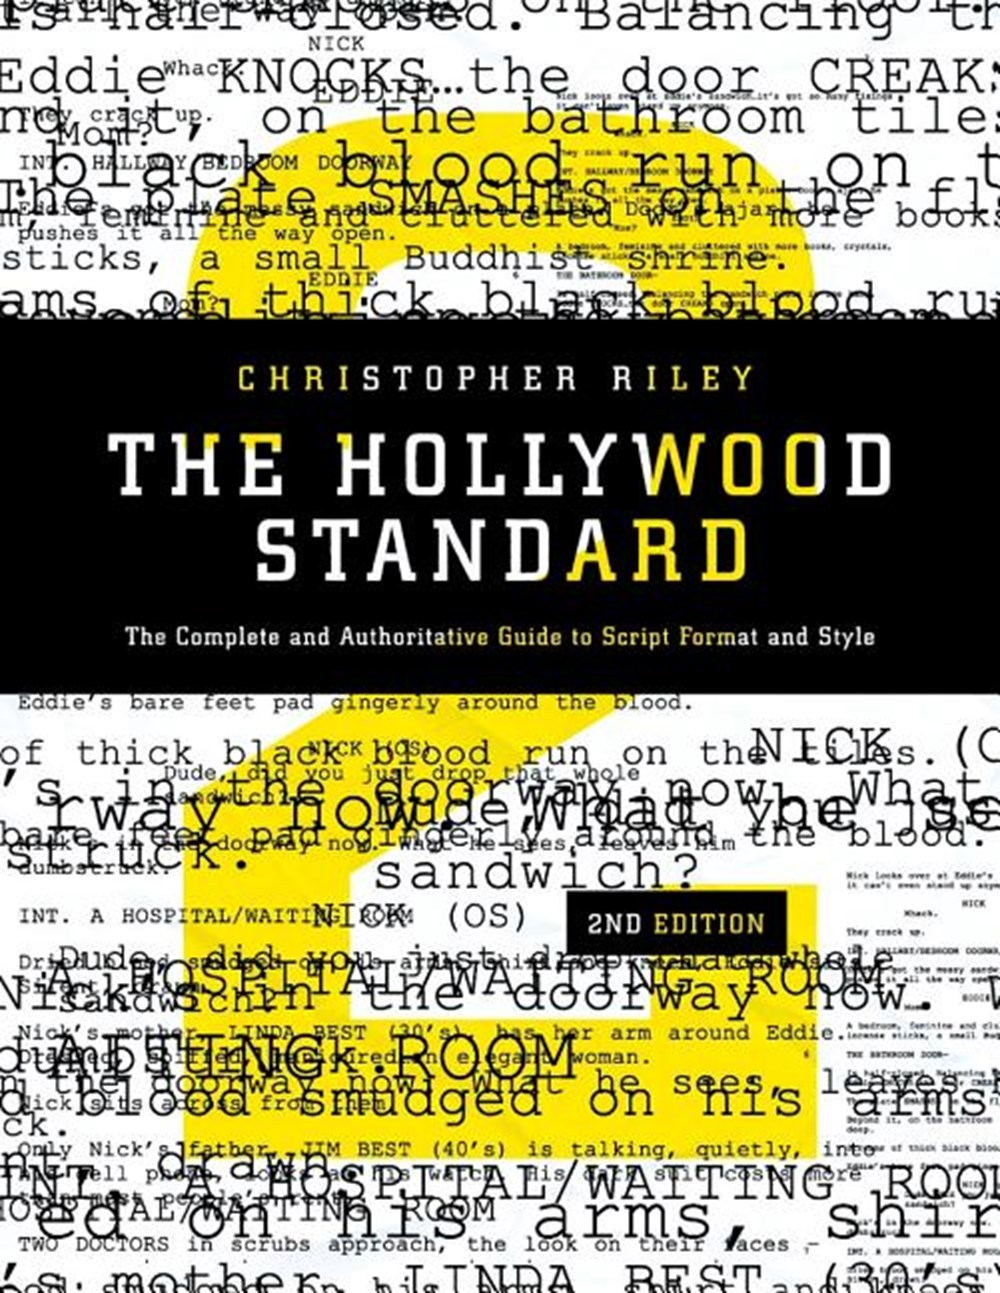 Hollywood Standard The Complete and Authoritative Guide to Script Format and Style